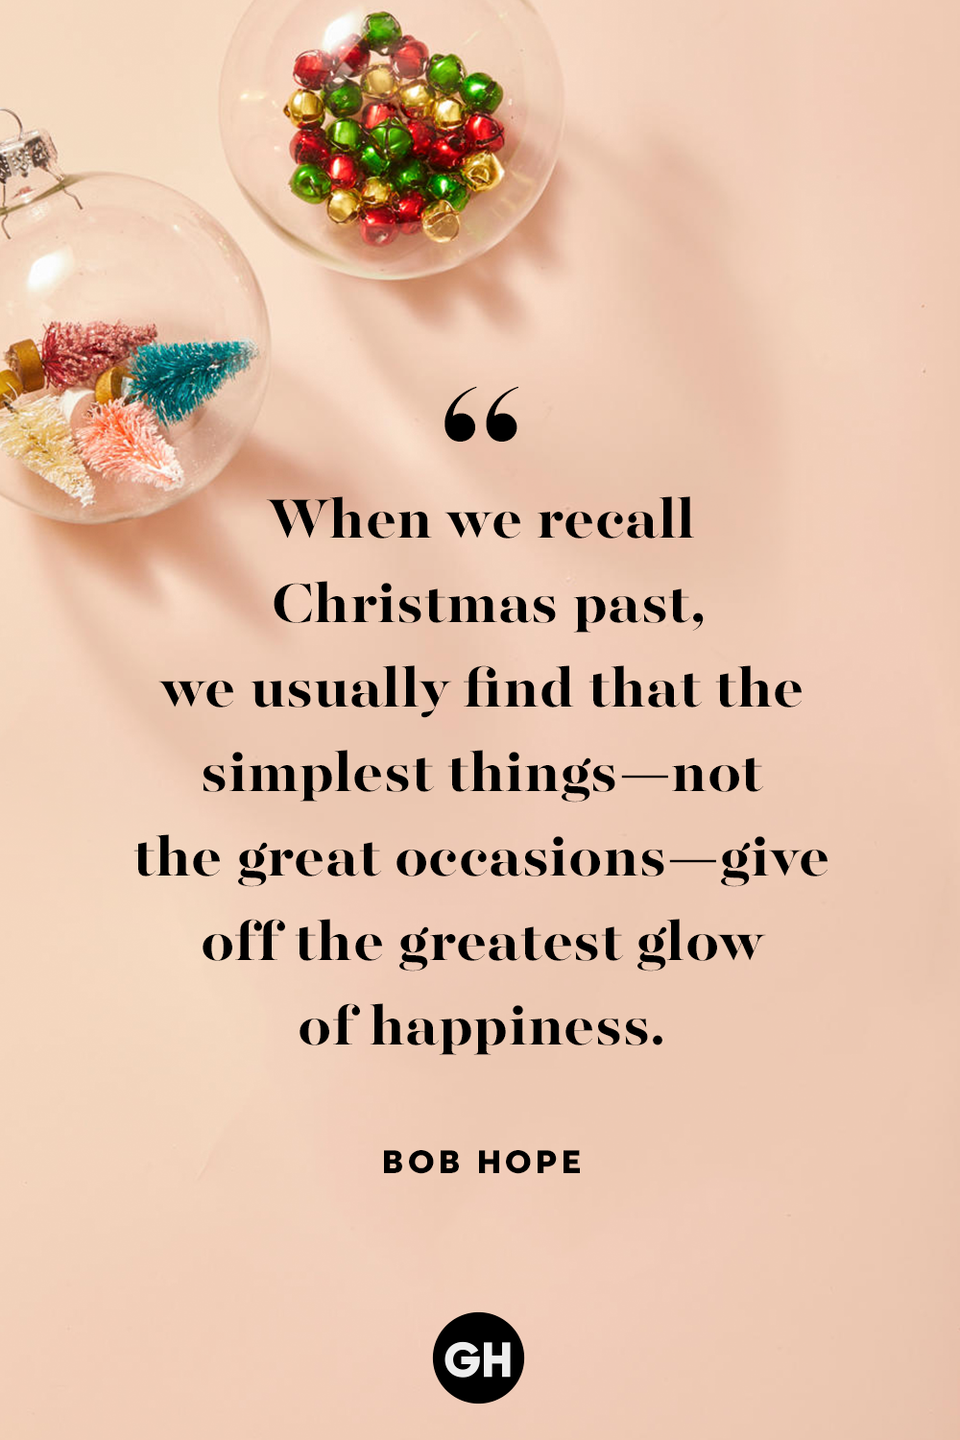 <p>When we recall Christmas past, we usually find that the simplest things — not the great occasions — give off the greatest glow of happiness.</p>